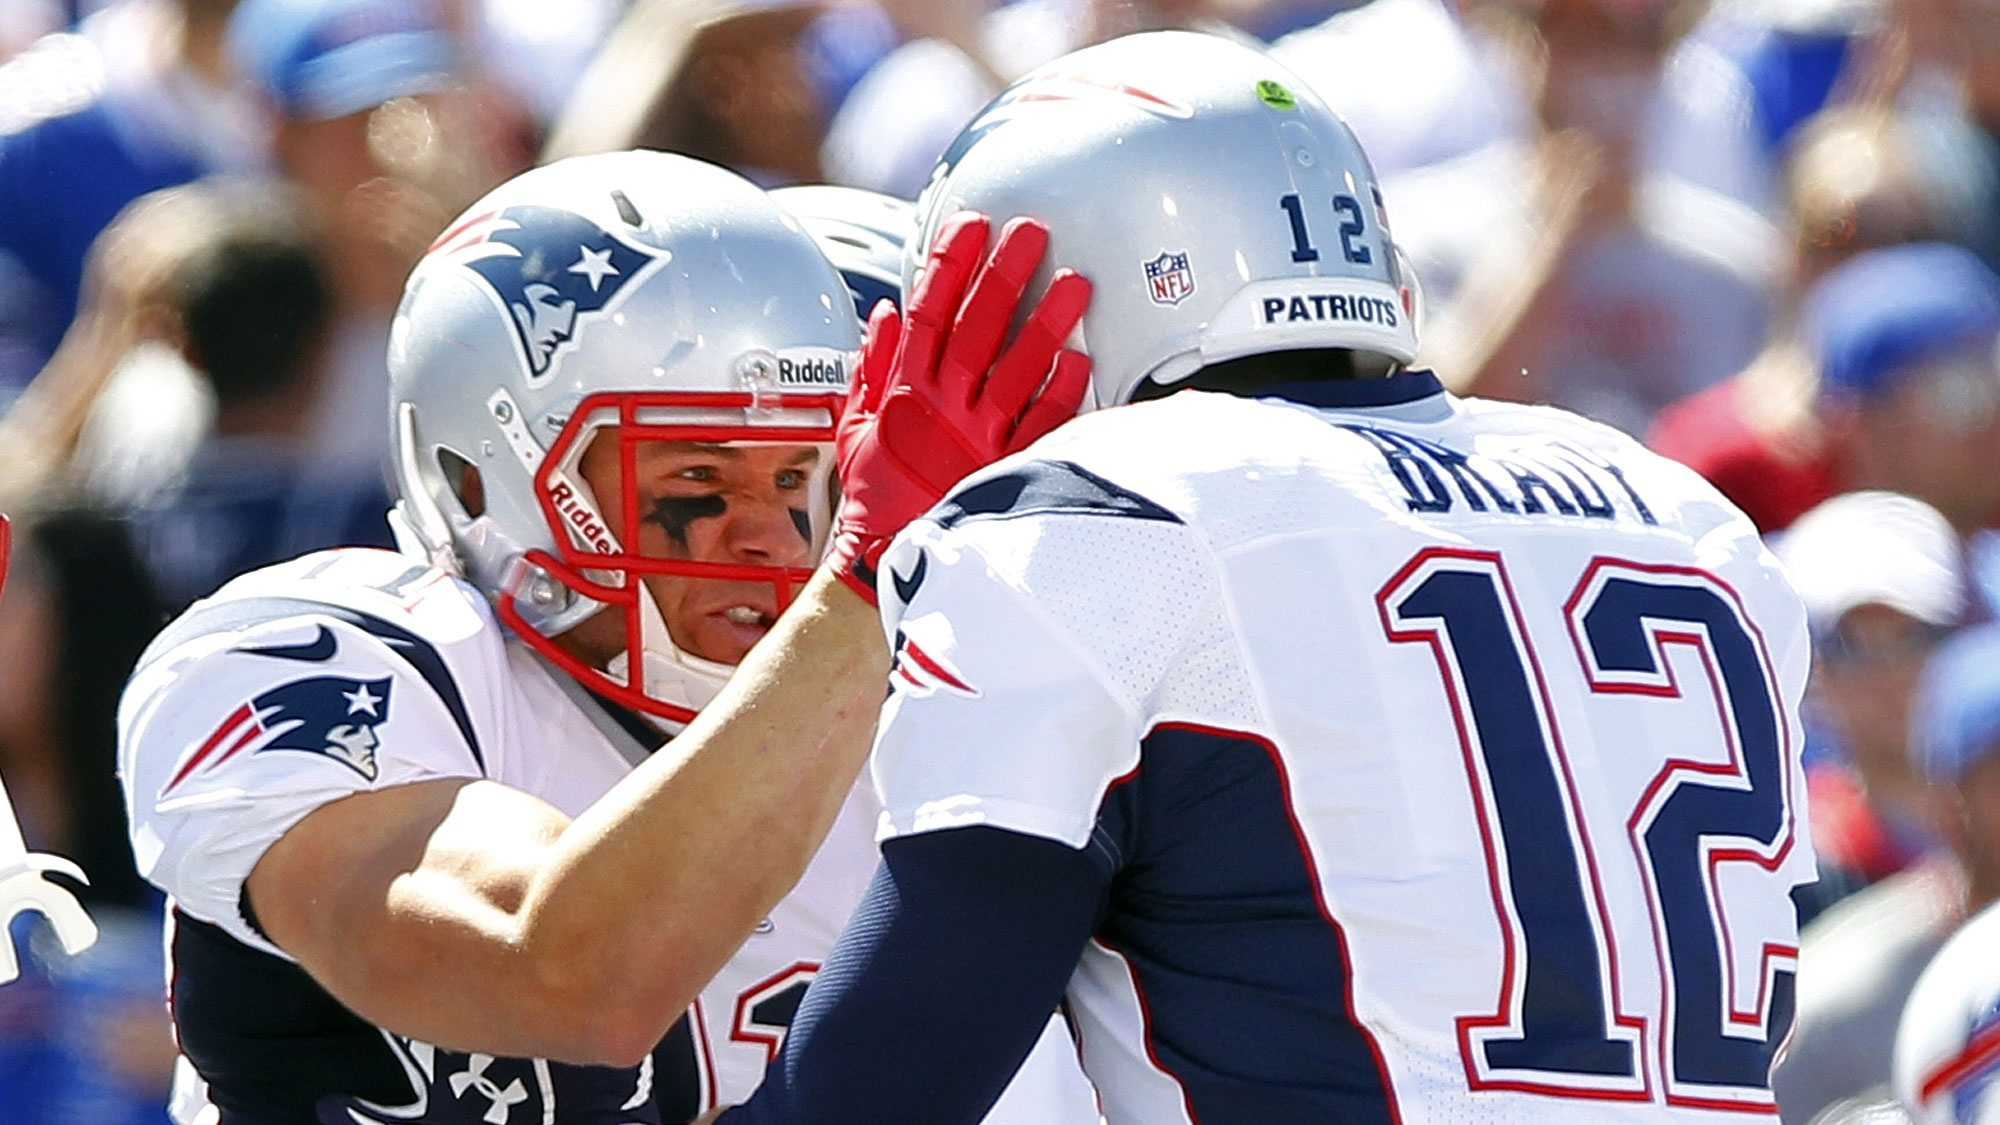 New England Patriots' Julian Edelman, left, celebrates with teammate Tom Brady, right, after catching a touchdown pass during the first half of an NFL football game against the Buffalo Bills, Sunday, Sept. 8, 2013, in Orchard Park.